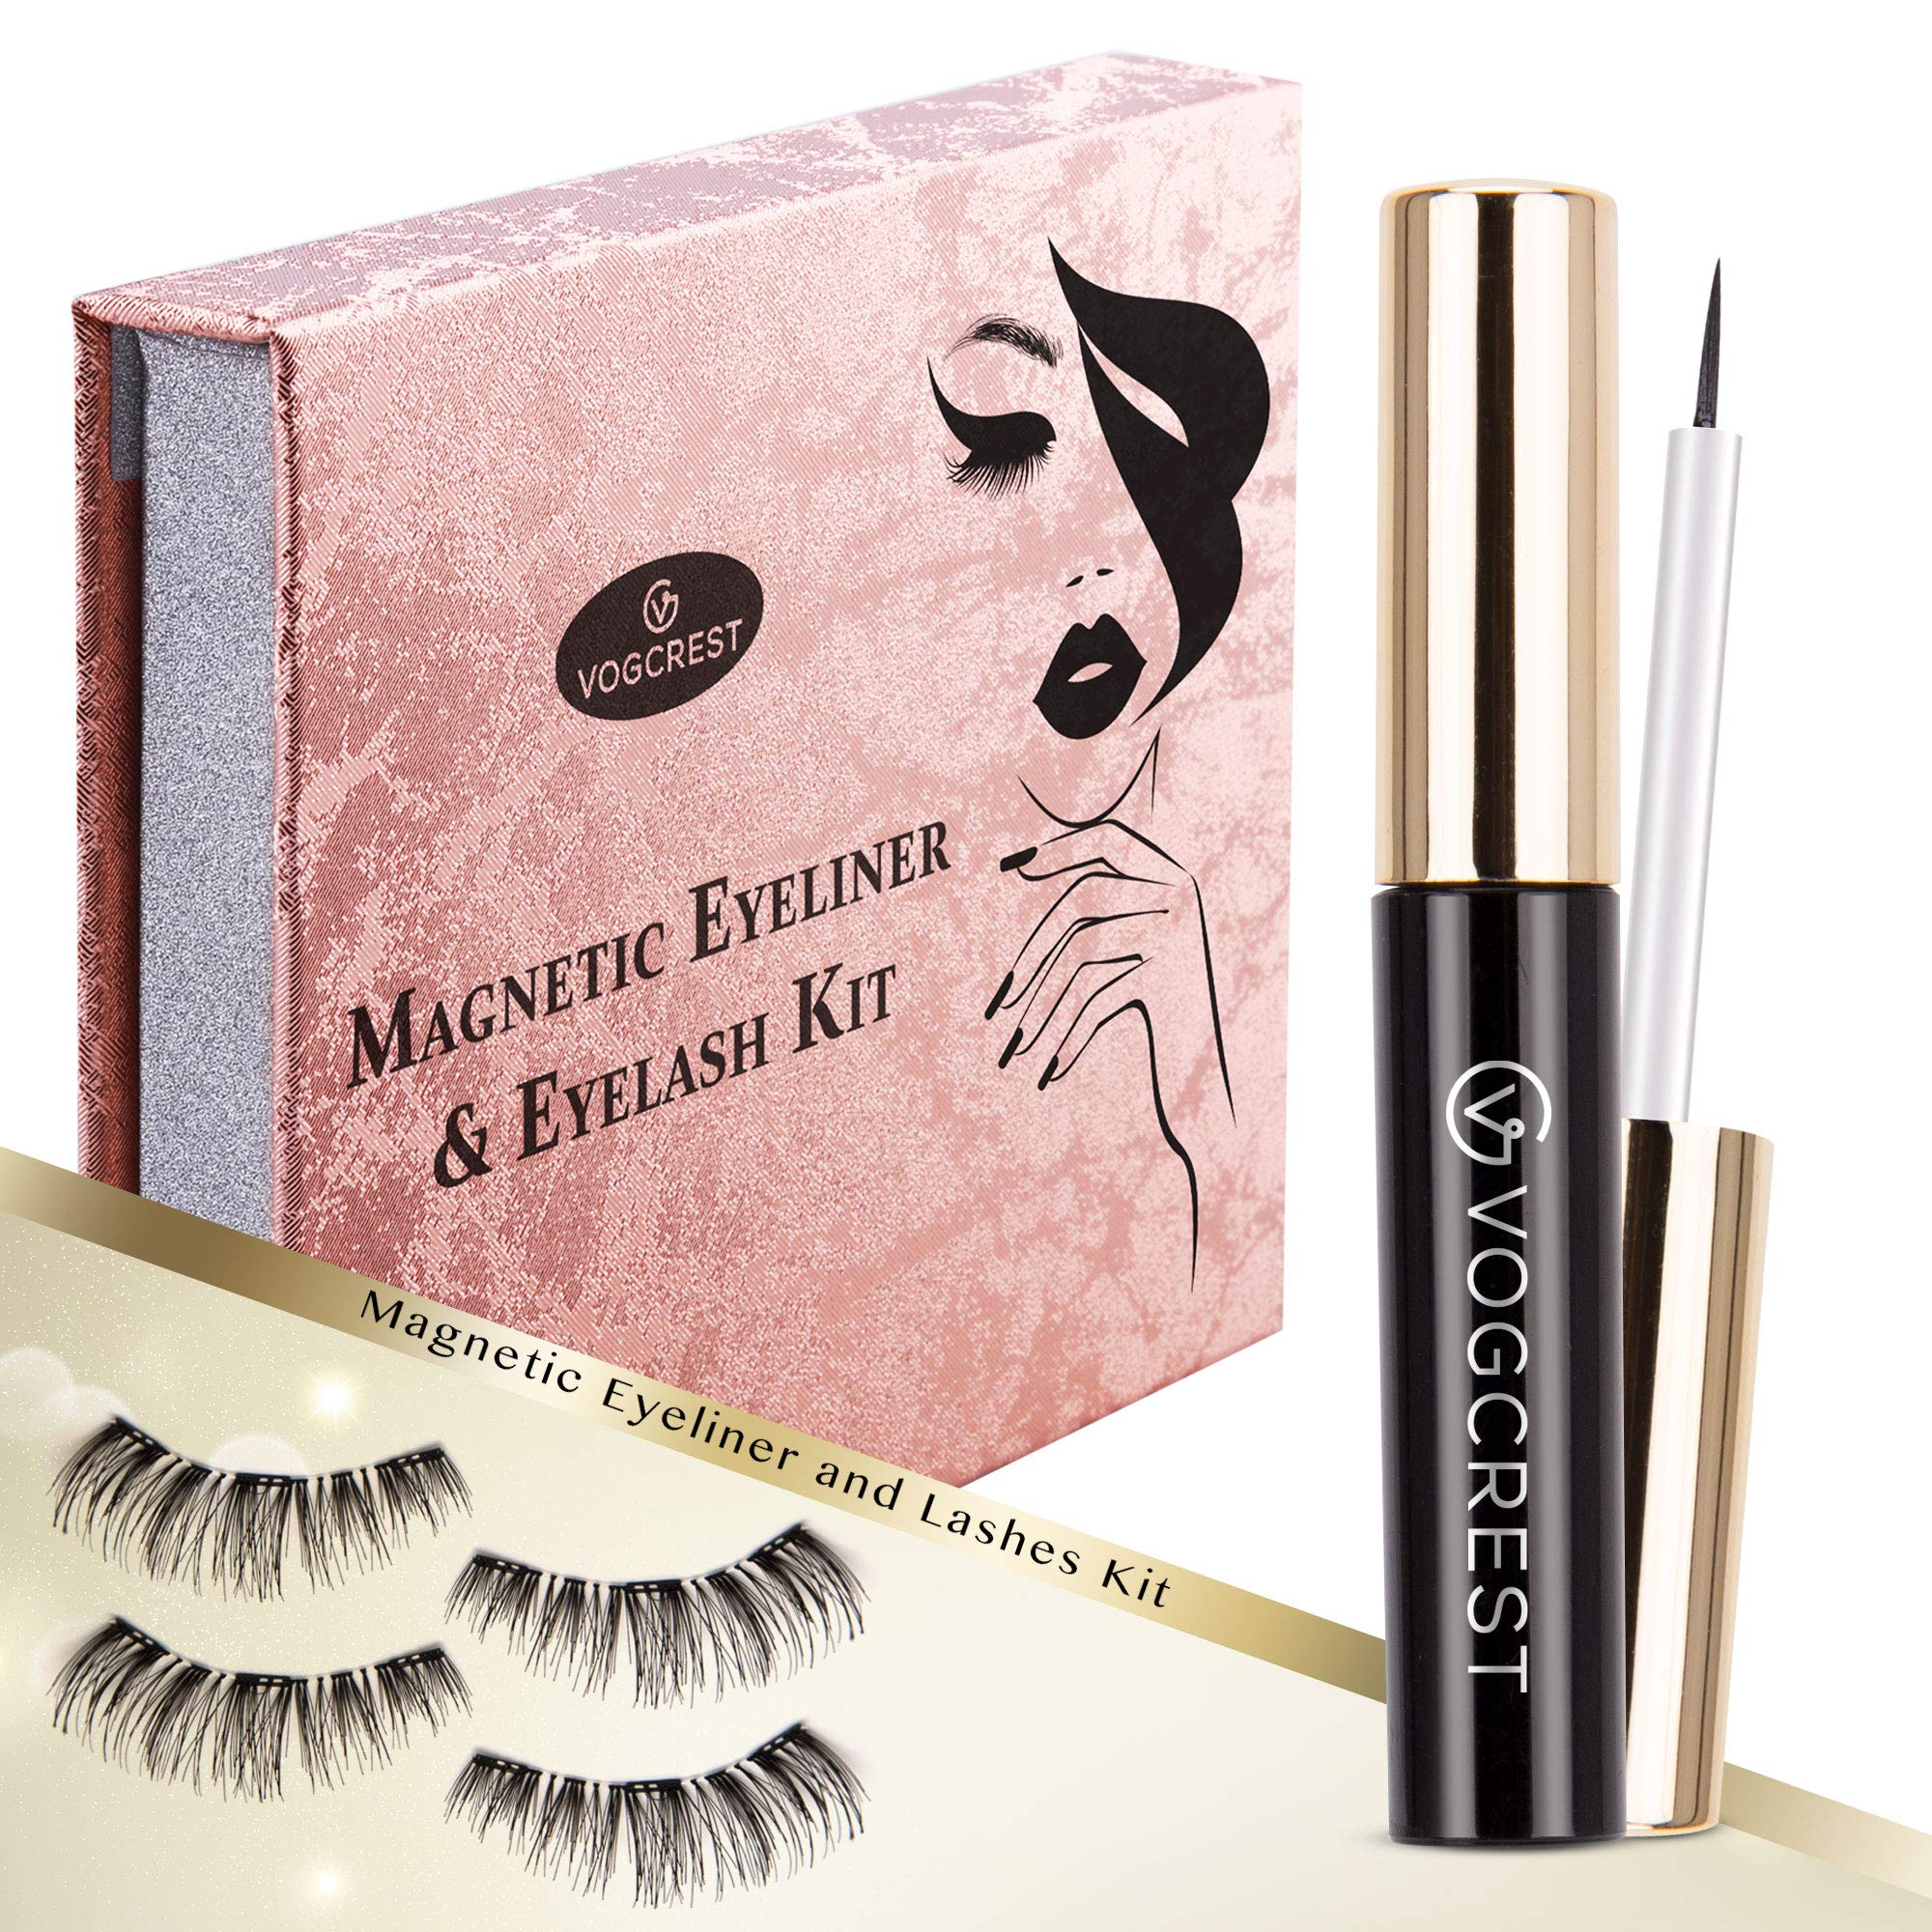 Magnetic Eyeliner Eyelashes Kit, Magnetic Lashes With Eyeliner ,2 Pairs 3D Reusable Fake Eyelashes Set